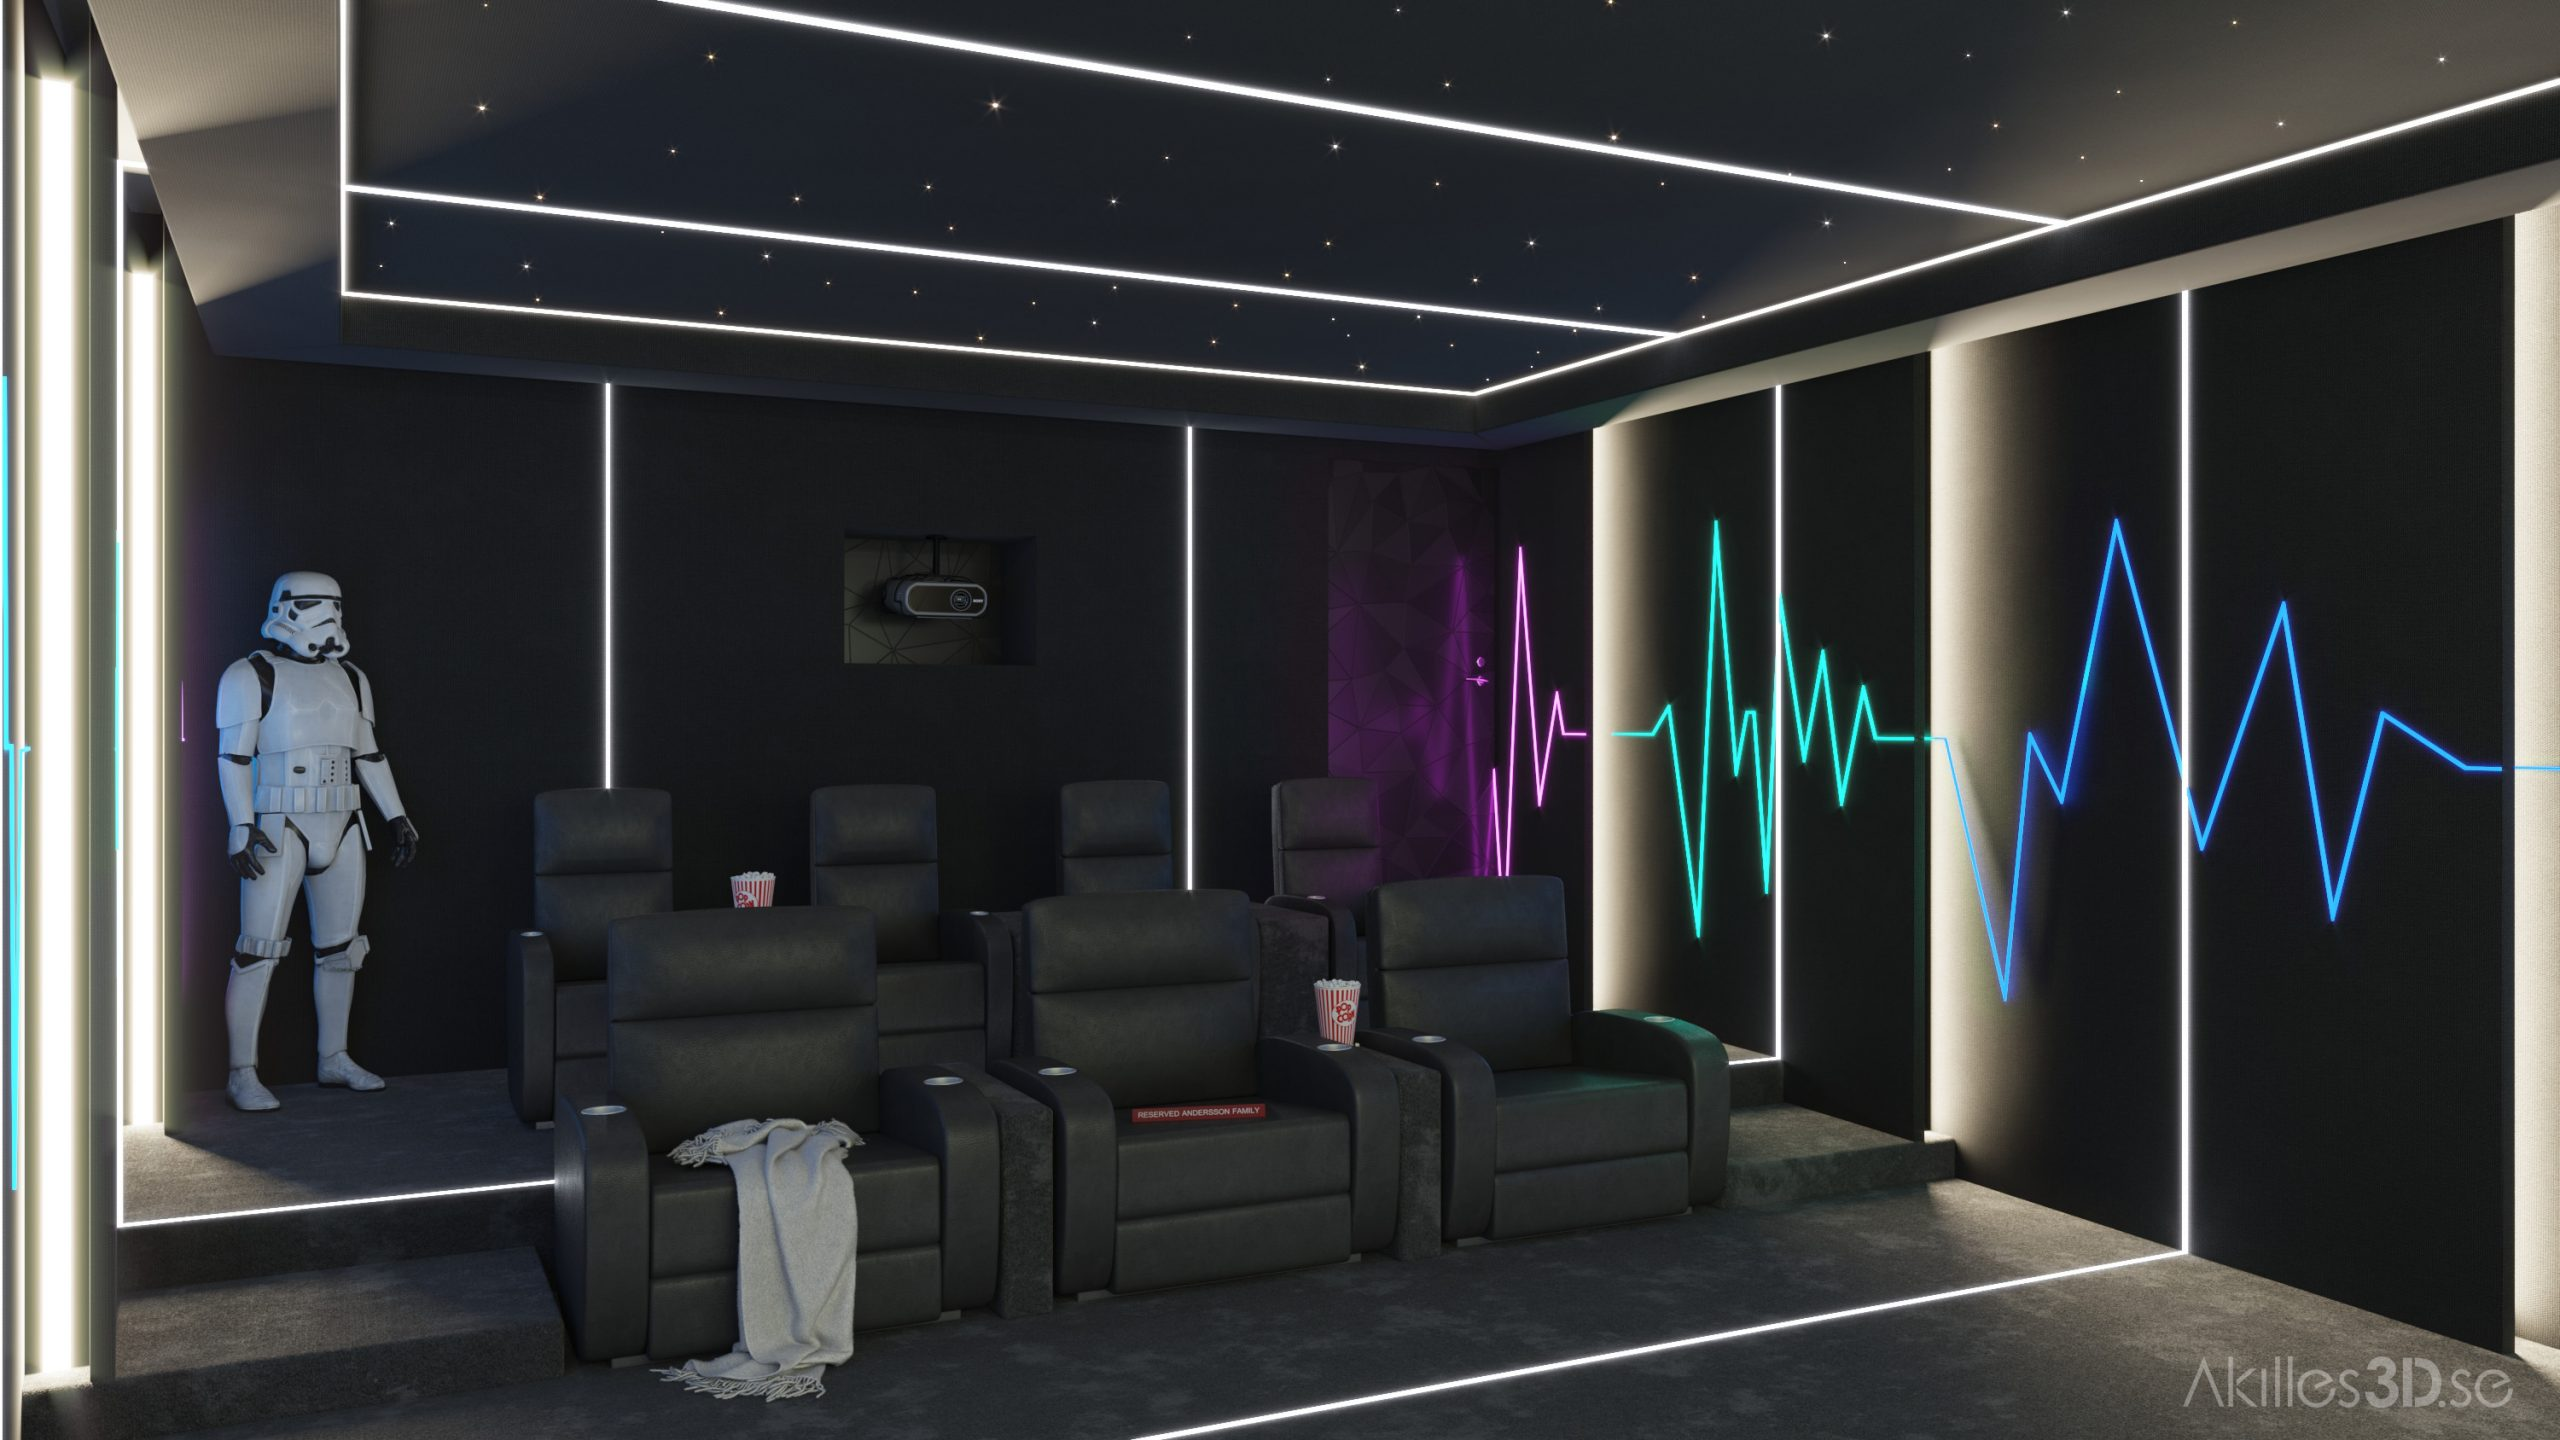 Home movie theatre 1 realistic 3D visualization interior architecture CGI high-end top quality scandinavian illustration photorealistic star wars imperial storm trooper statue